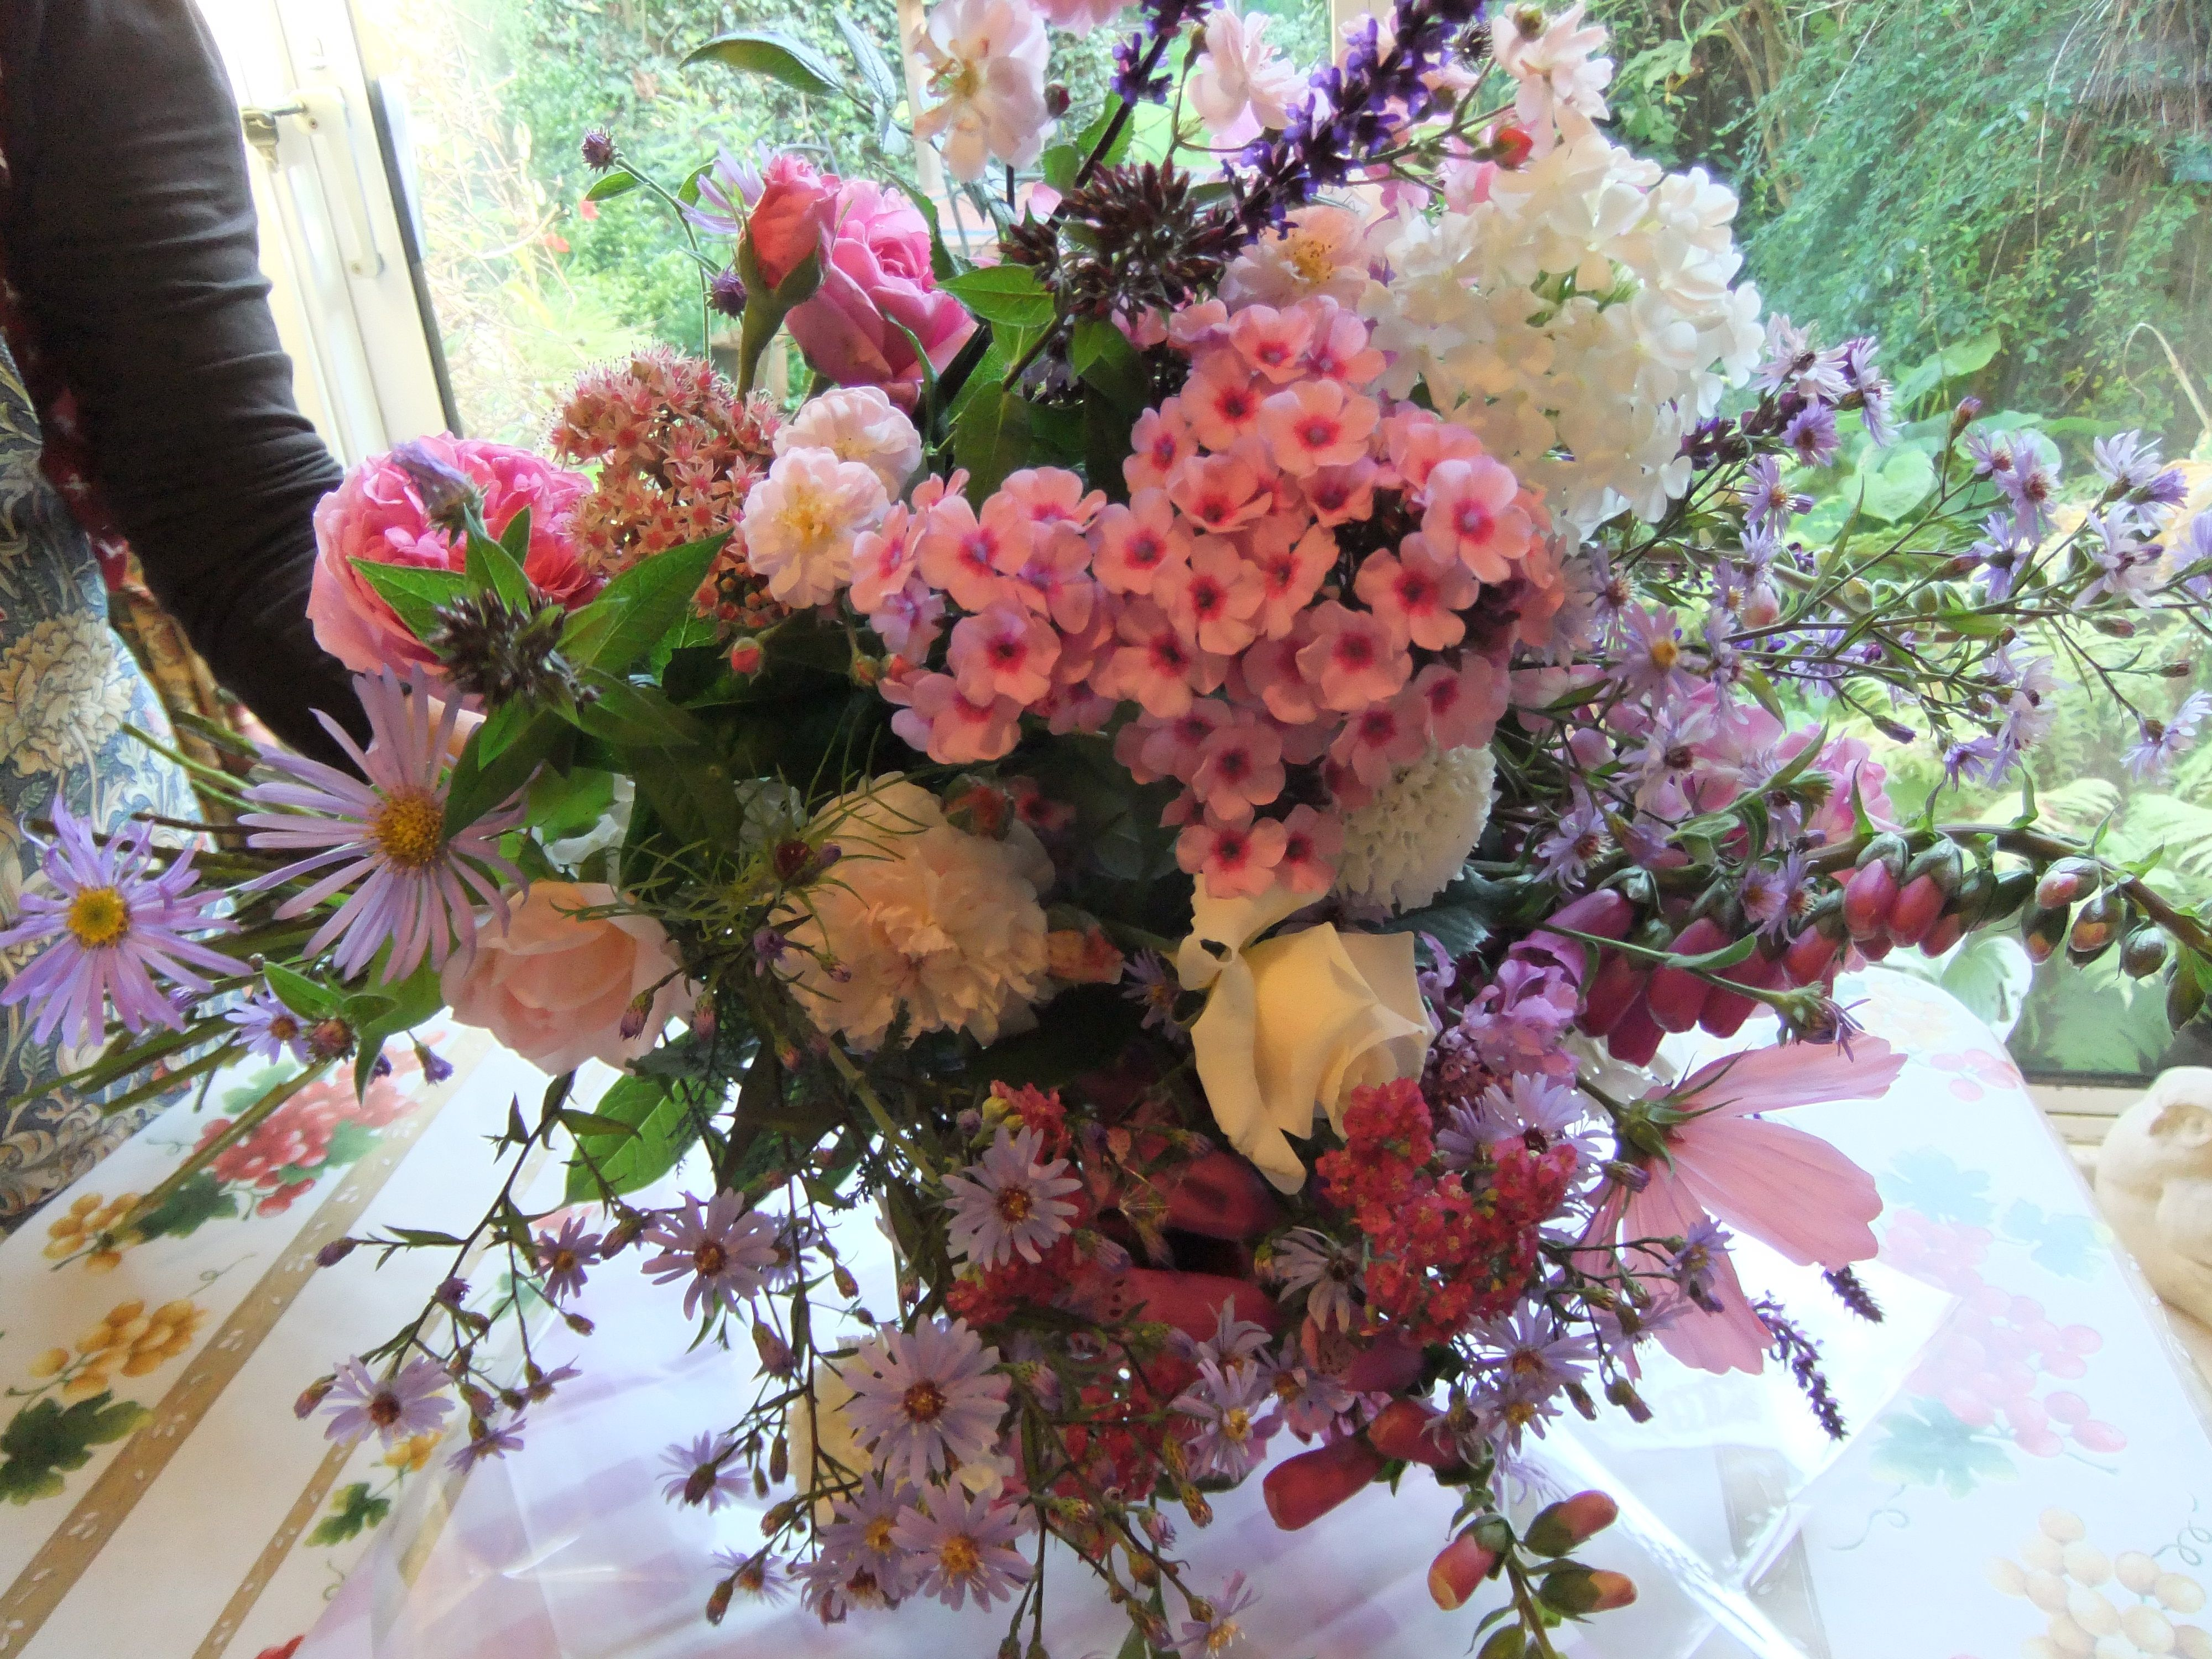 September Bouquet Of Our English Cottage Garden Flowers Phlox Roses Cosmos Foxgloves Country Garden Flowers Garden Wedding Flowers English Cottage Garden